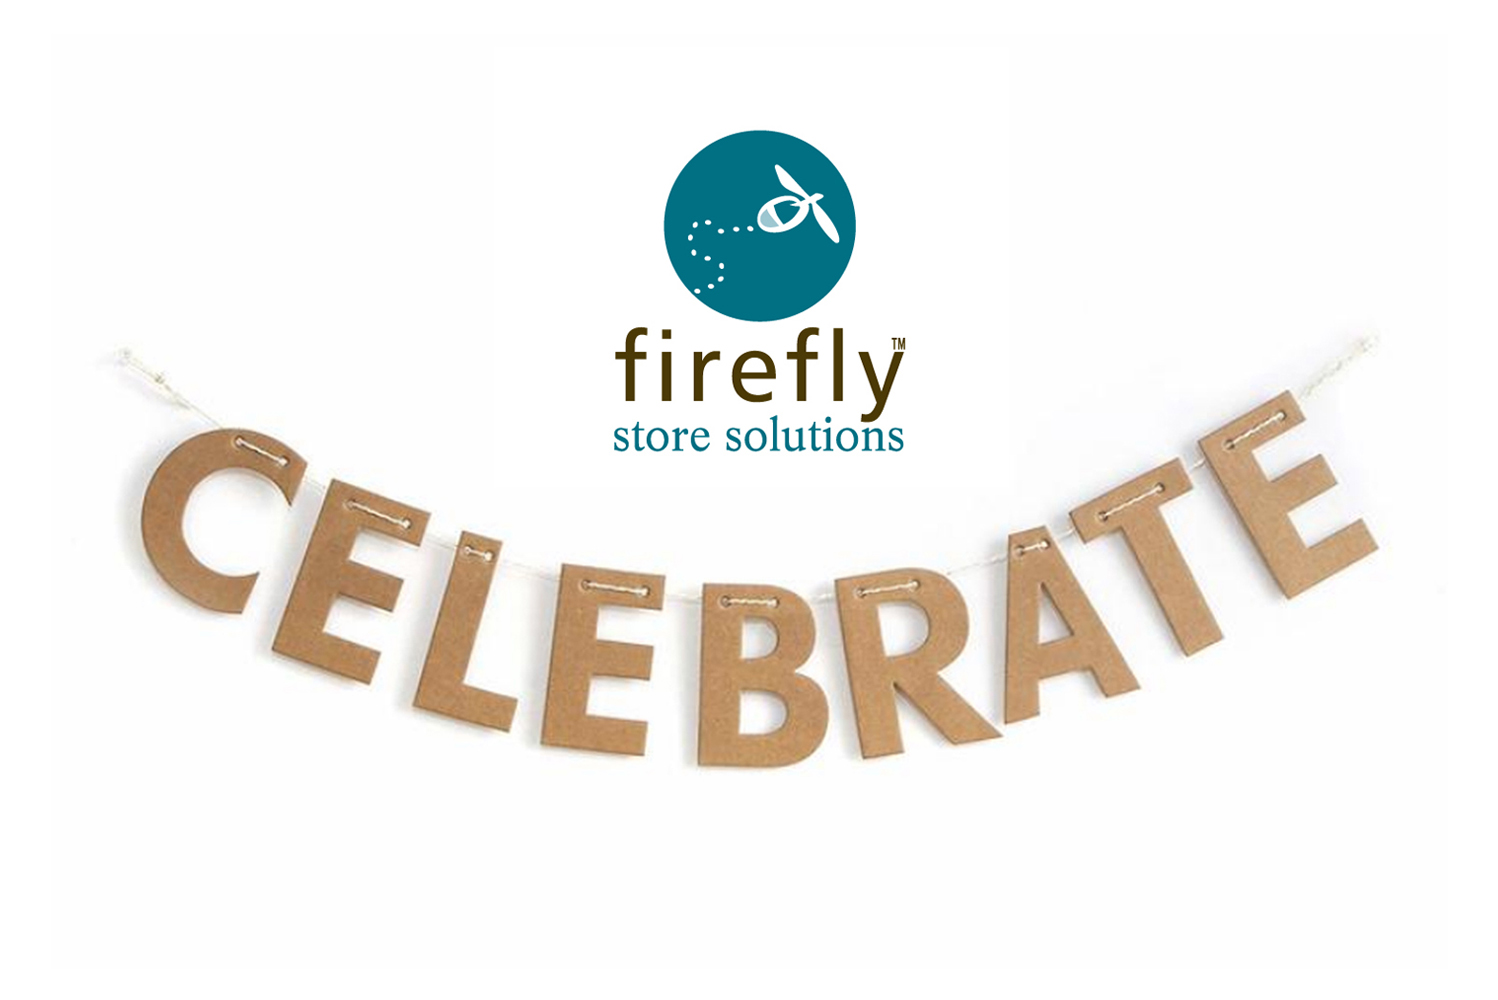 Firefly Store Solutions celebrates 65 years of service